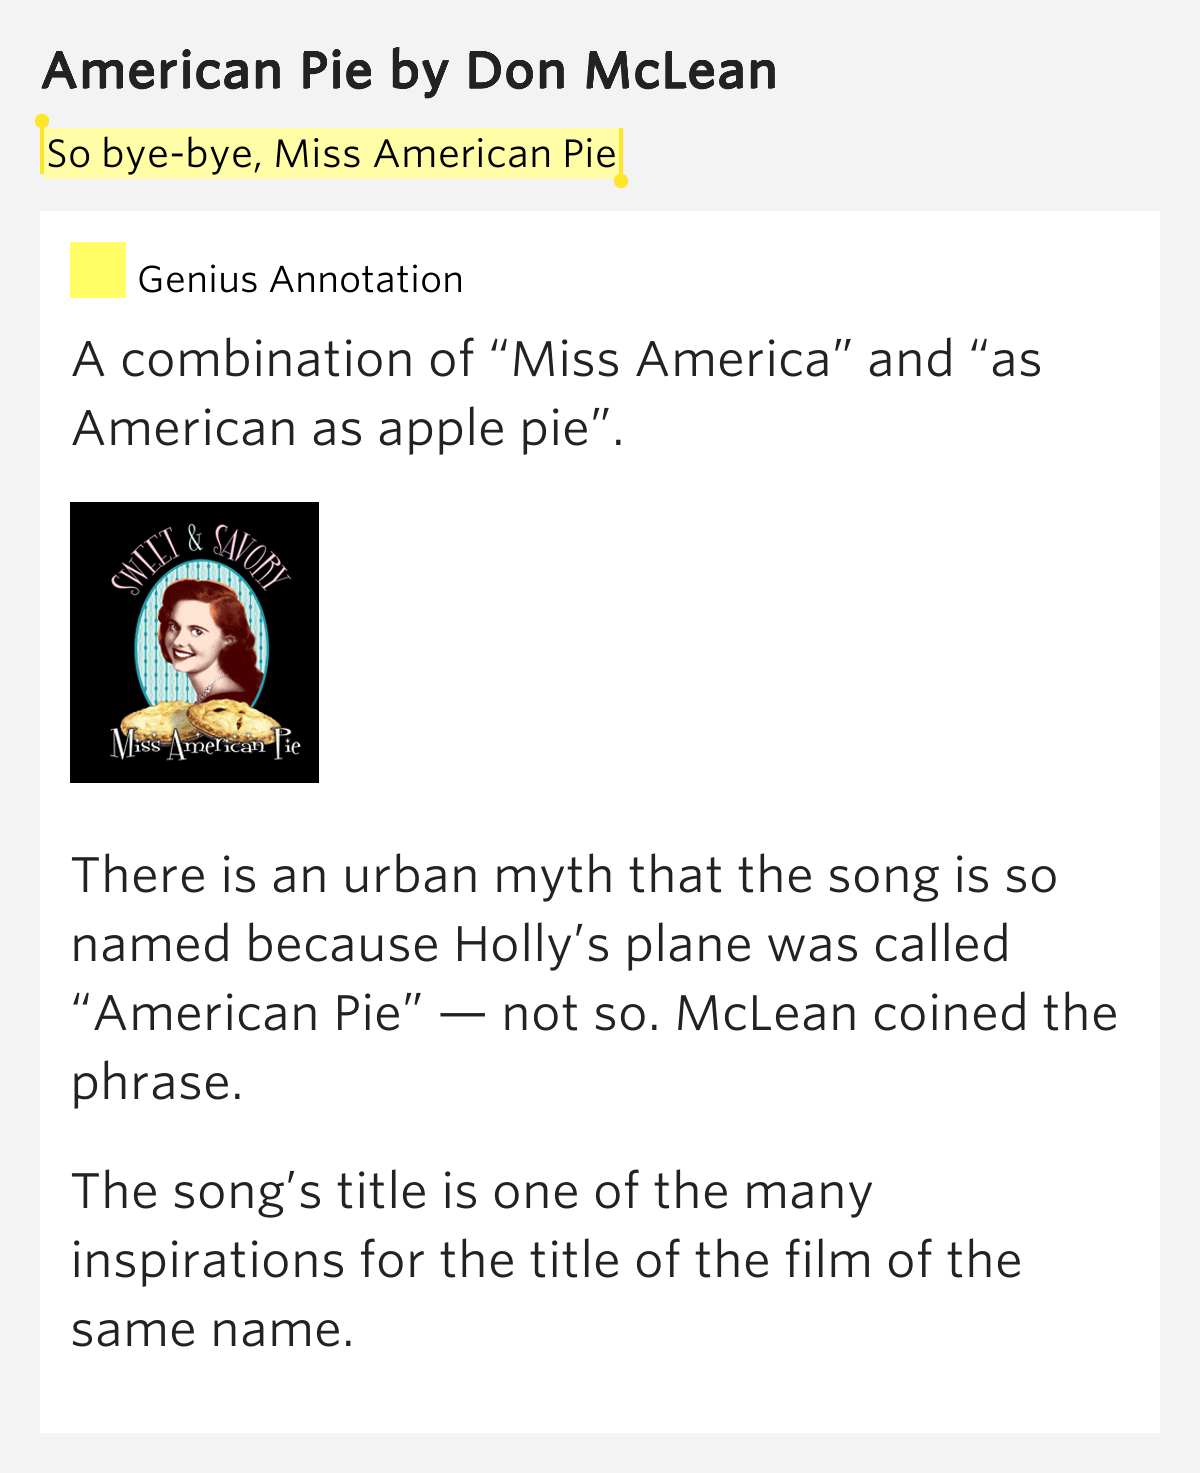 ms u . s quiche song